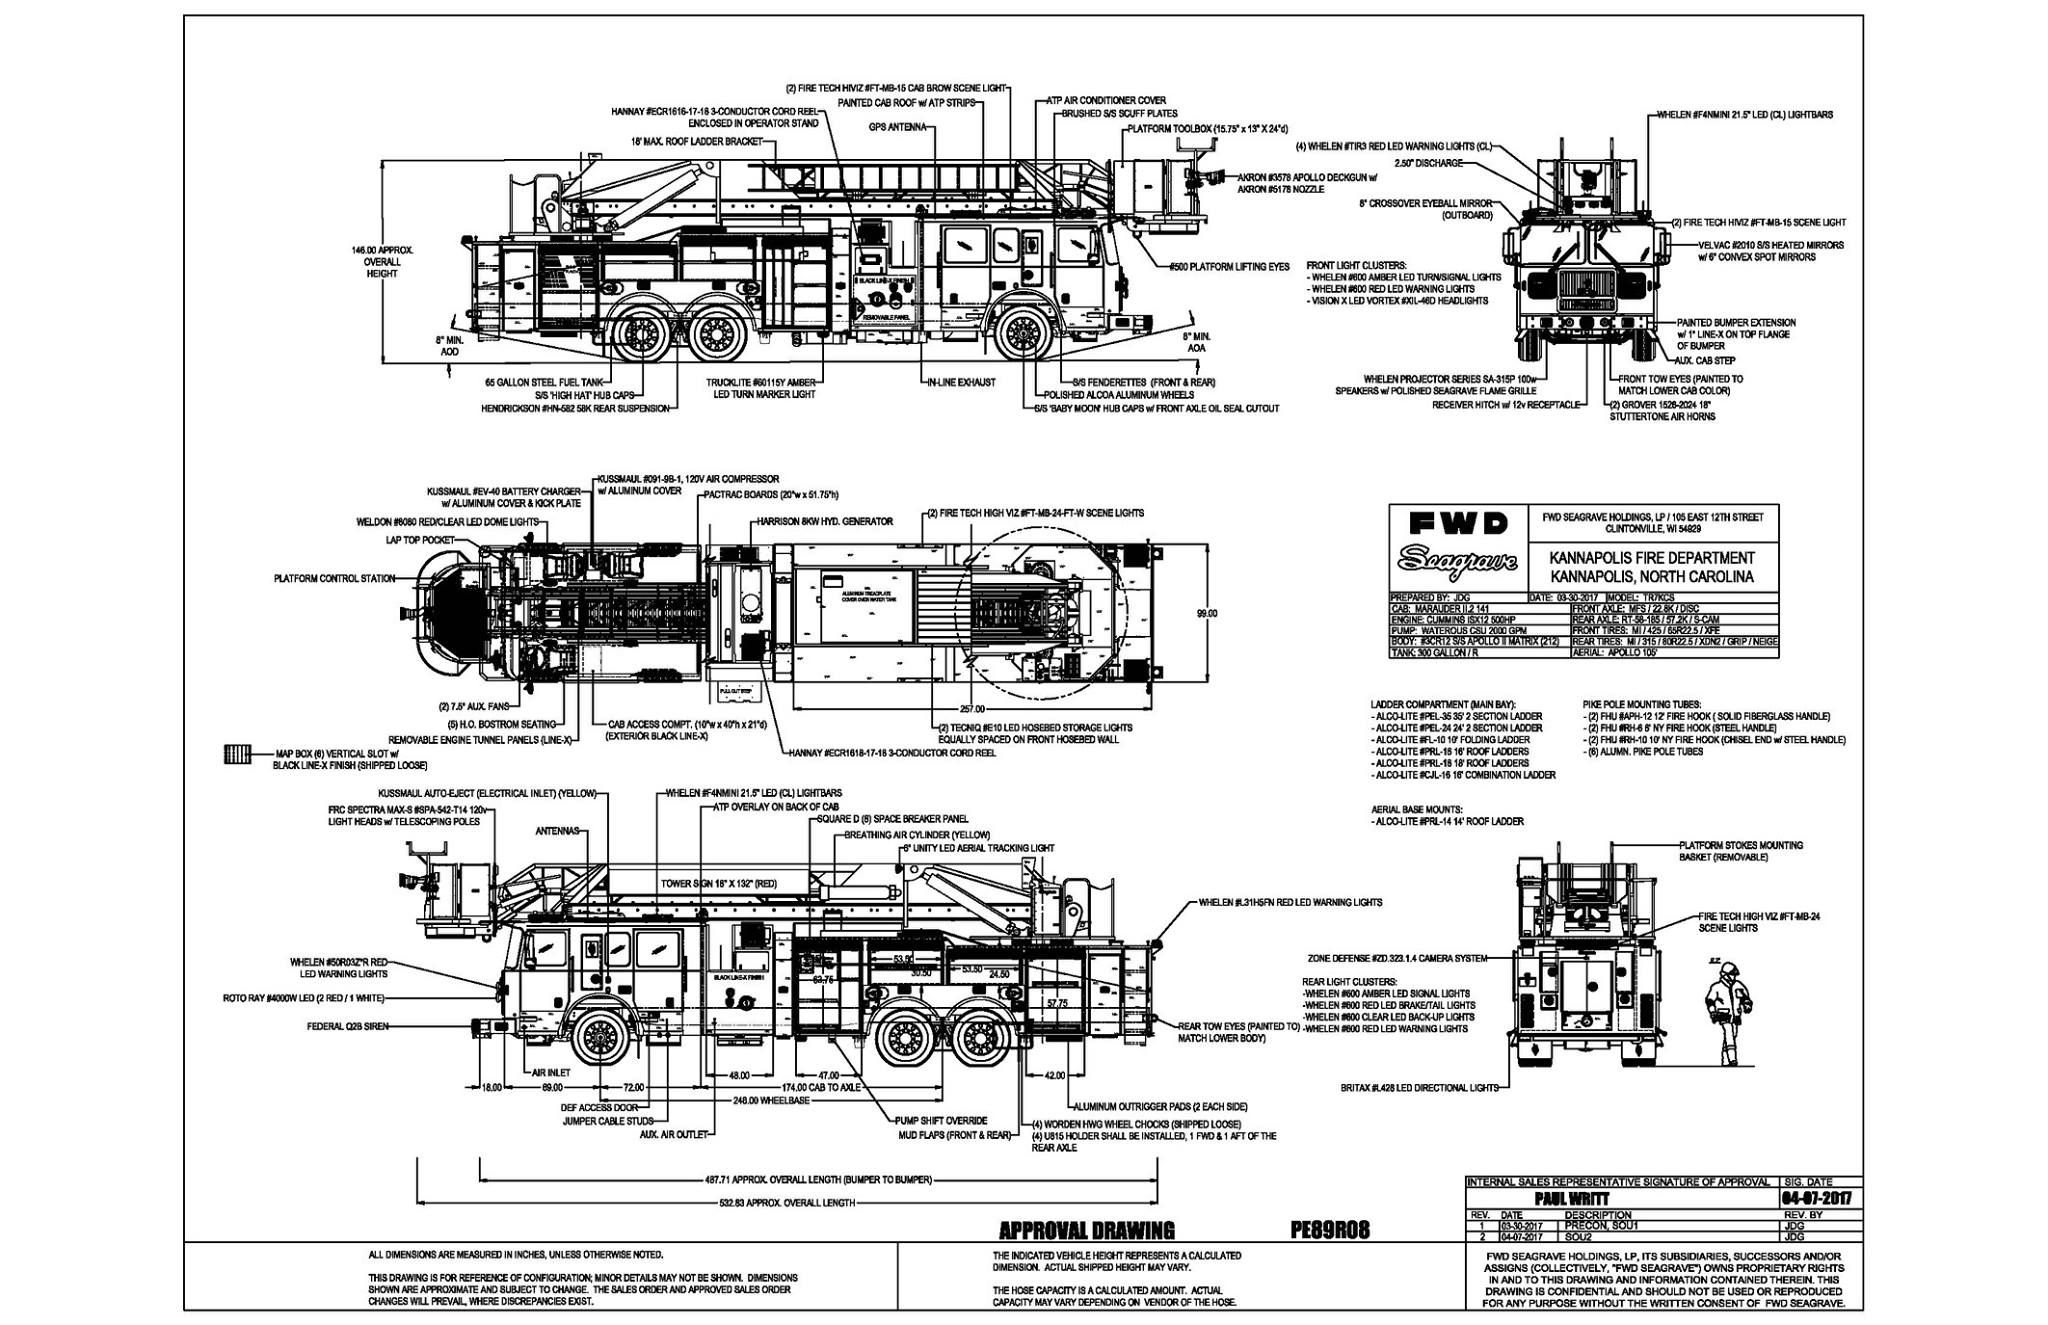 Fire Engine Diagram Seat | Wiring Library